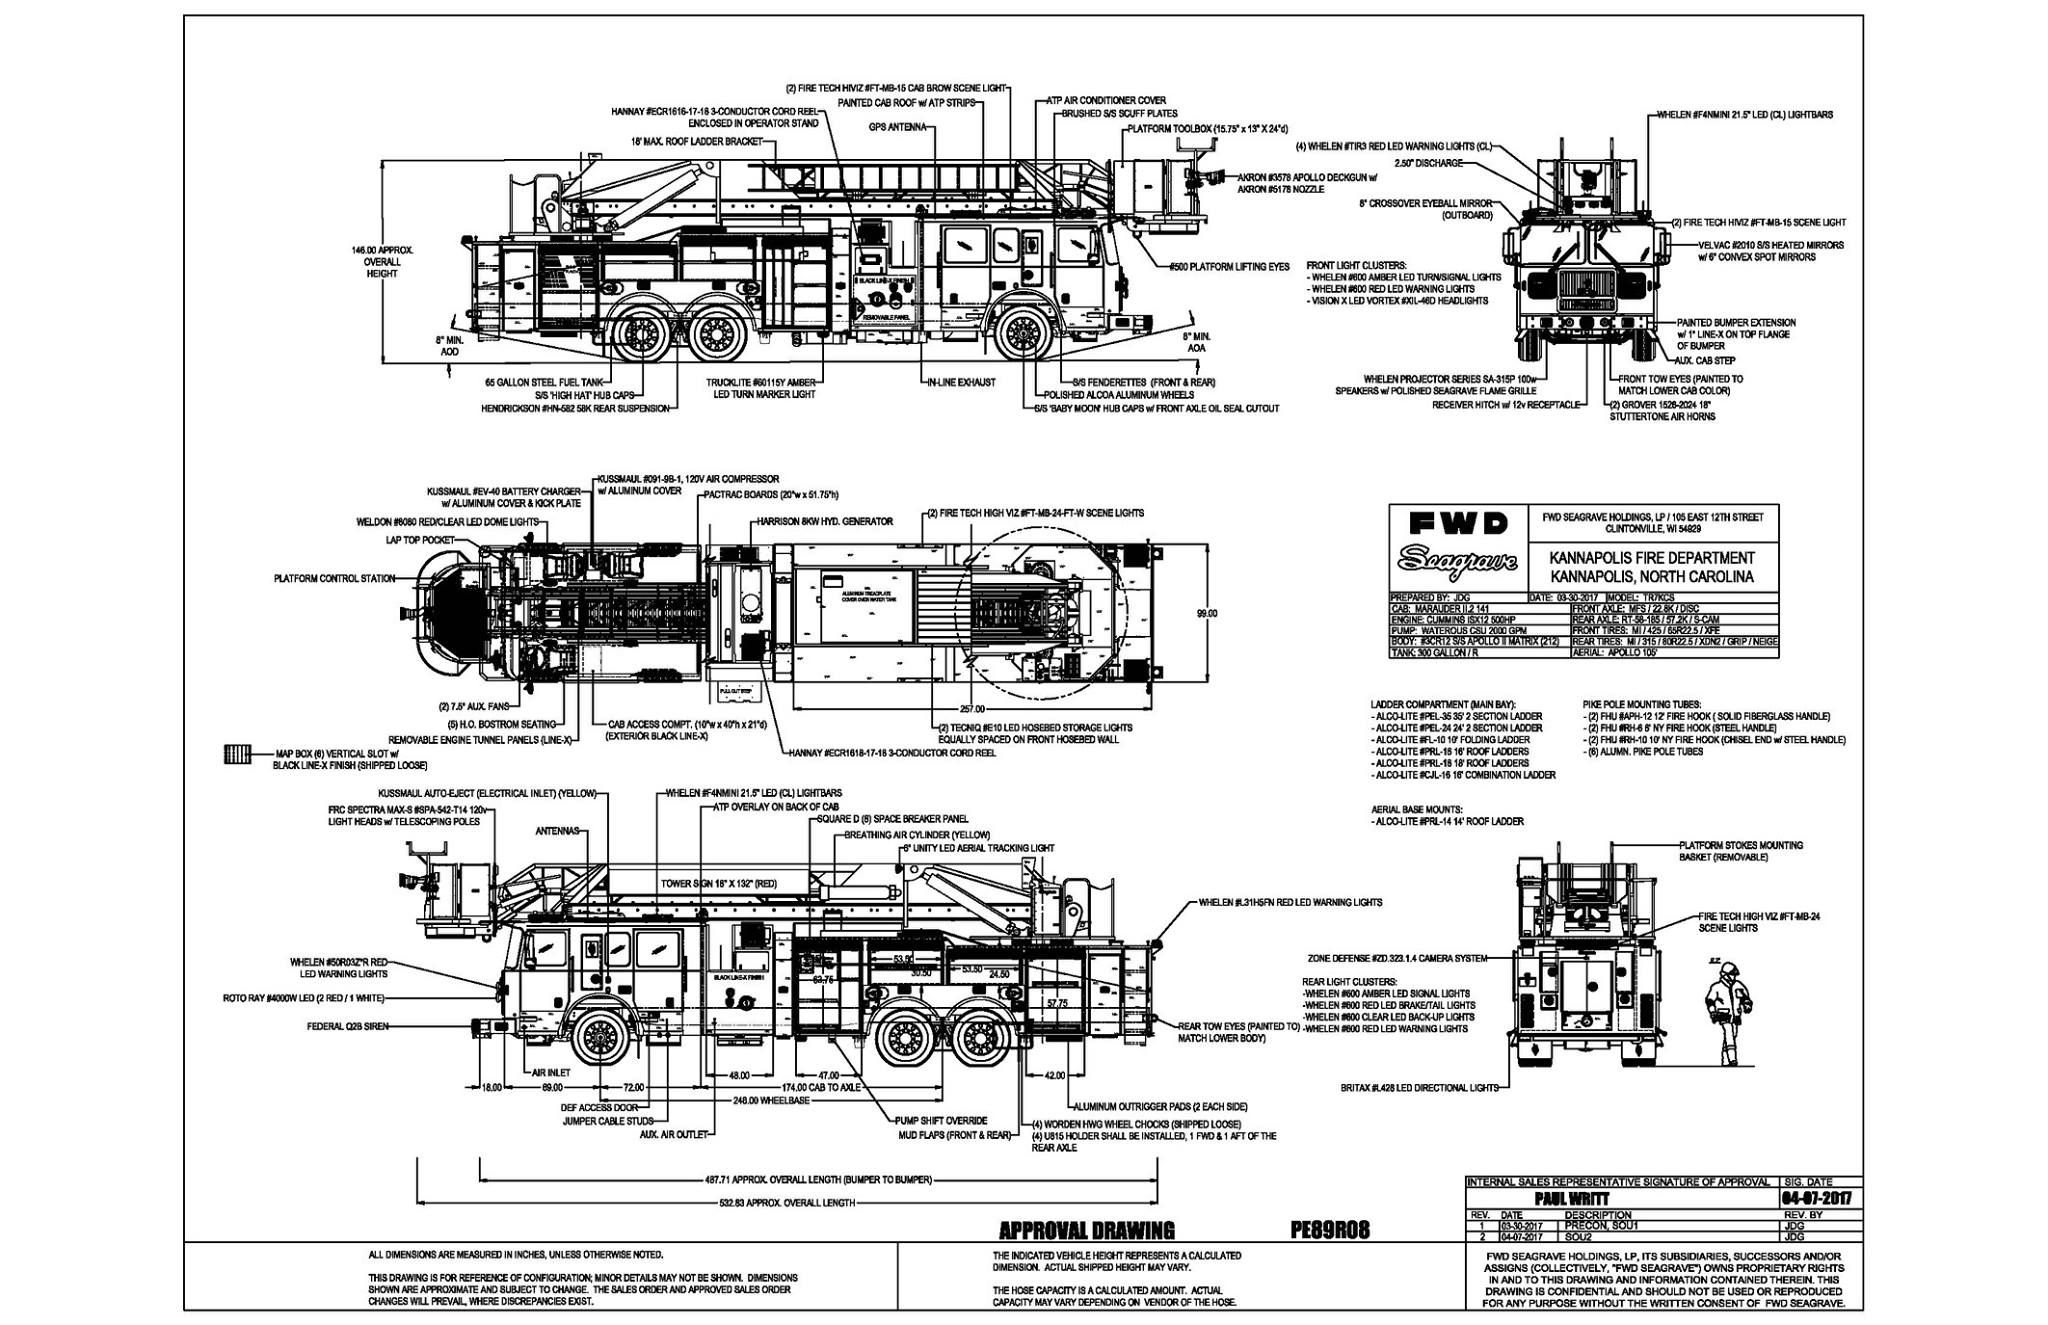 Fire Engine Diagram Seat | Wiring Library